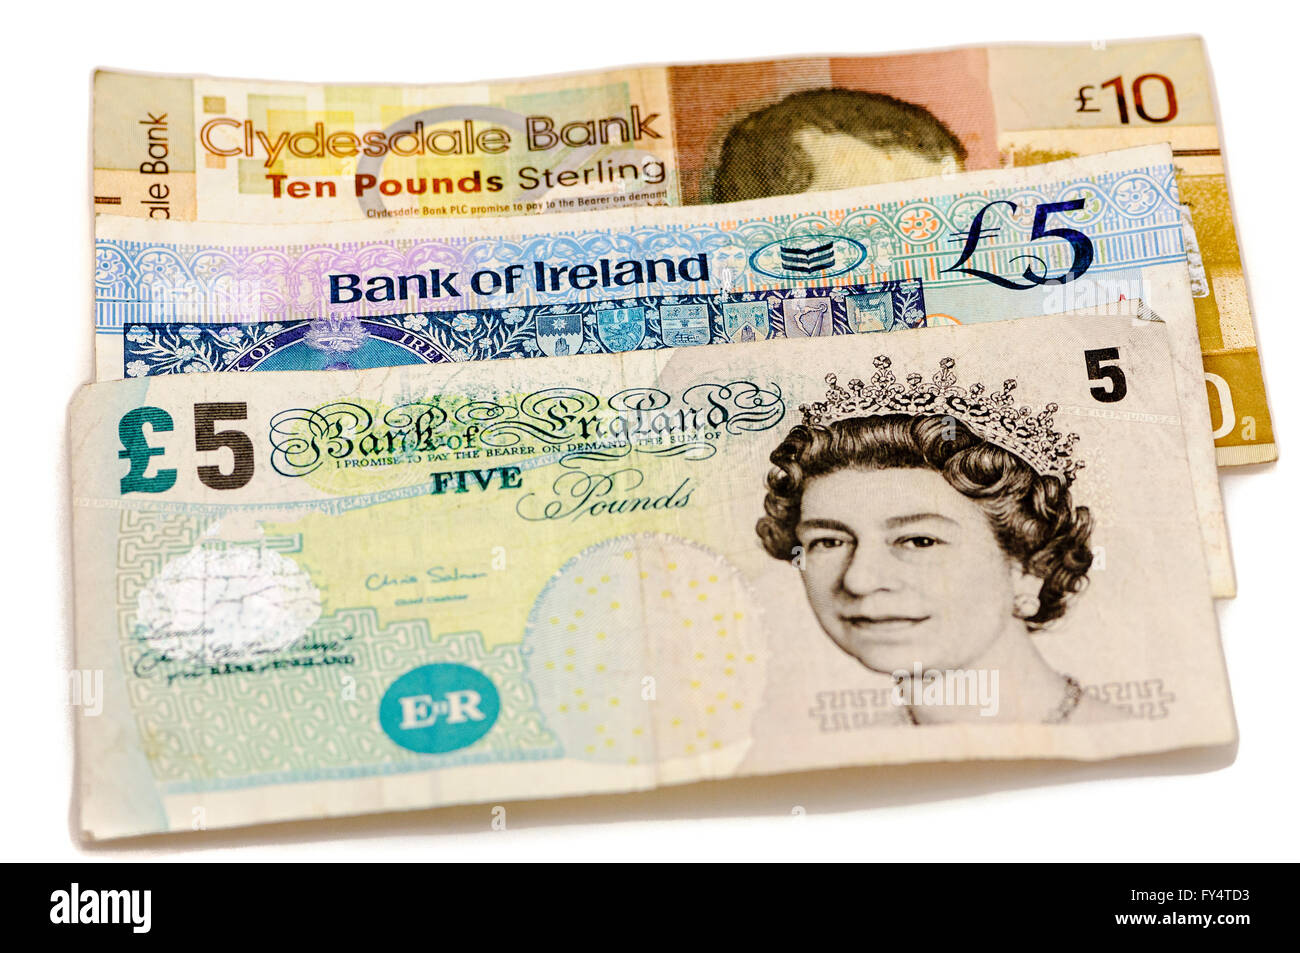 Banknotes from the Clydesdale Bank in Scotland, Bank of Ireland in Northern Ireland and the Bank of England, all - Stock Image